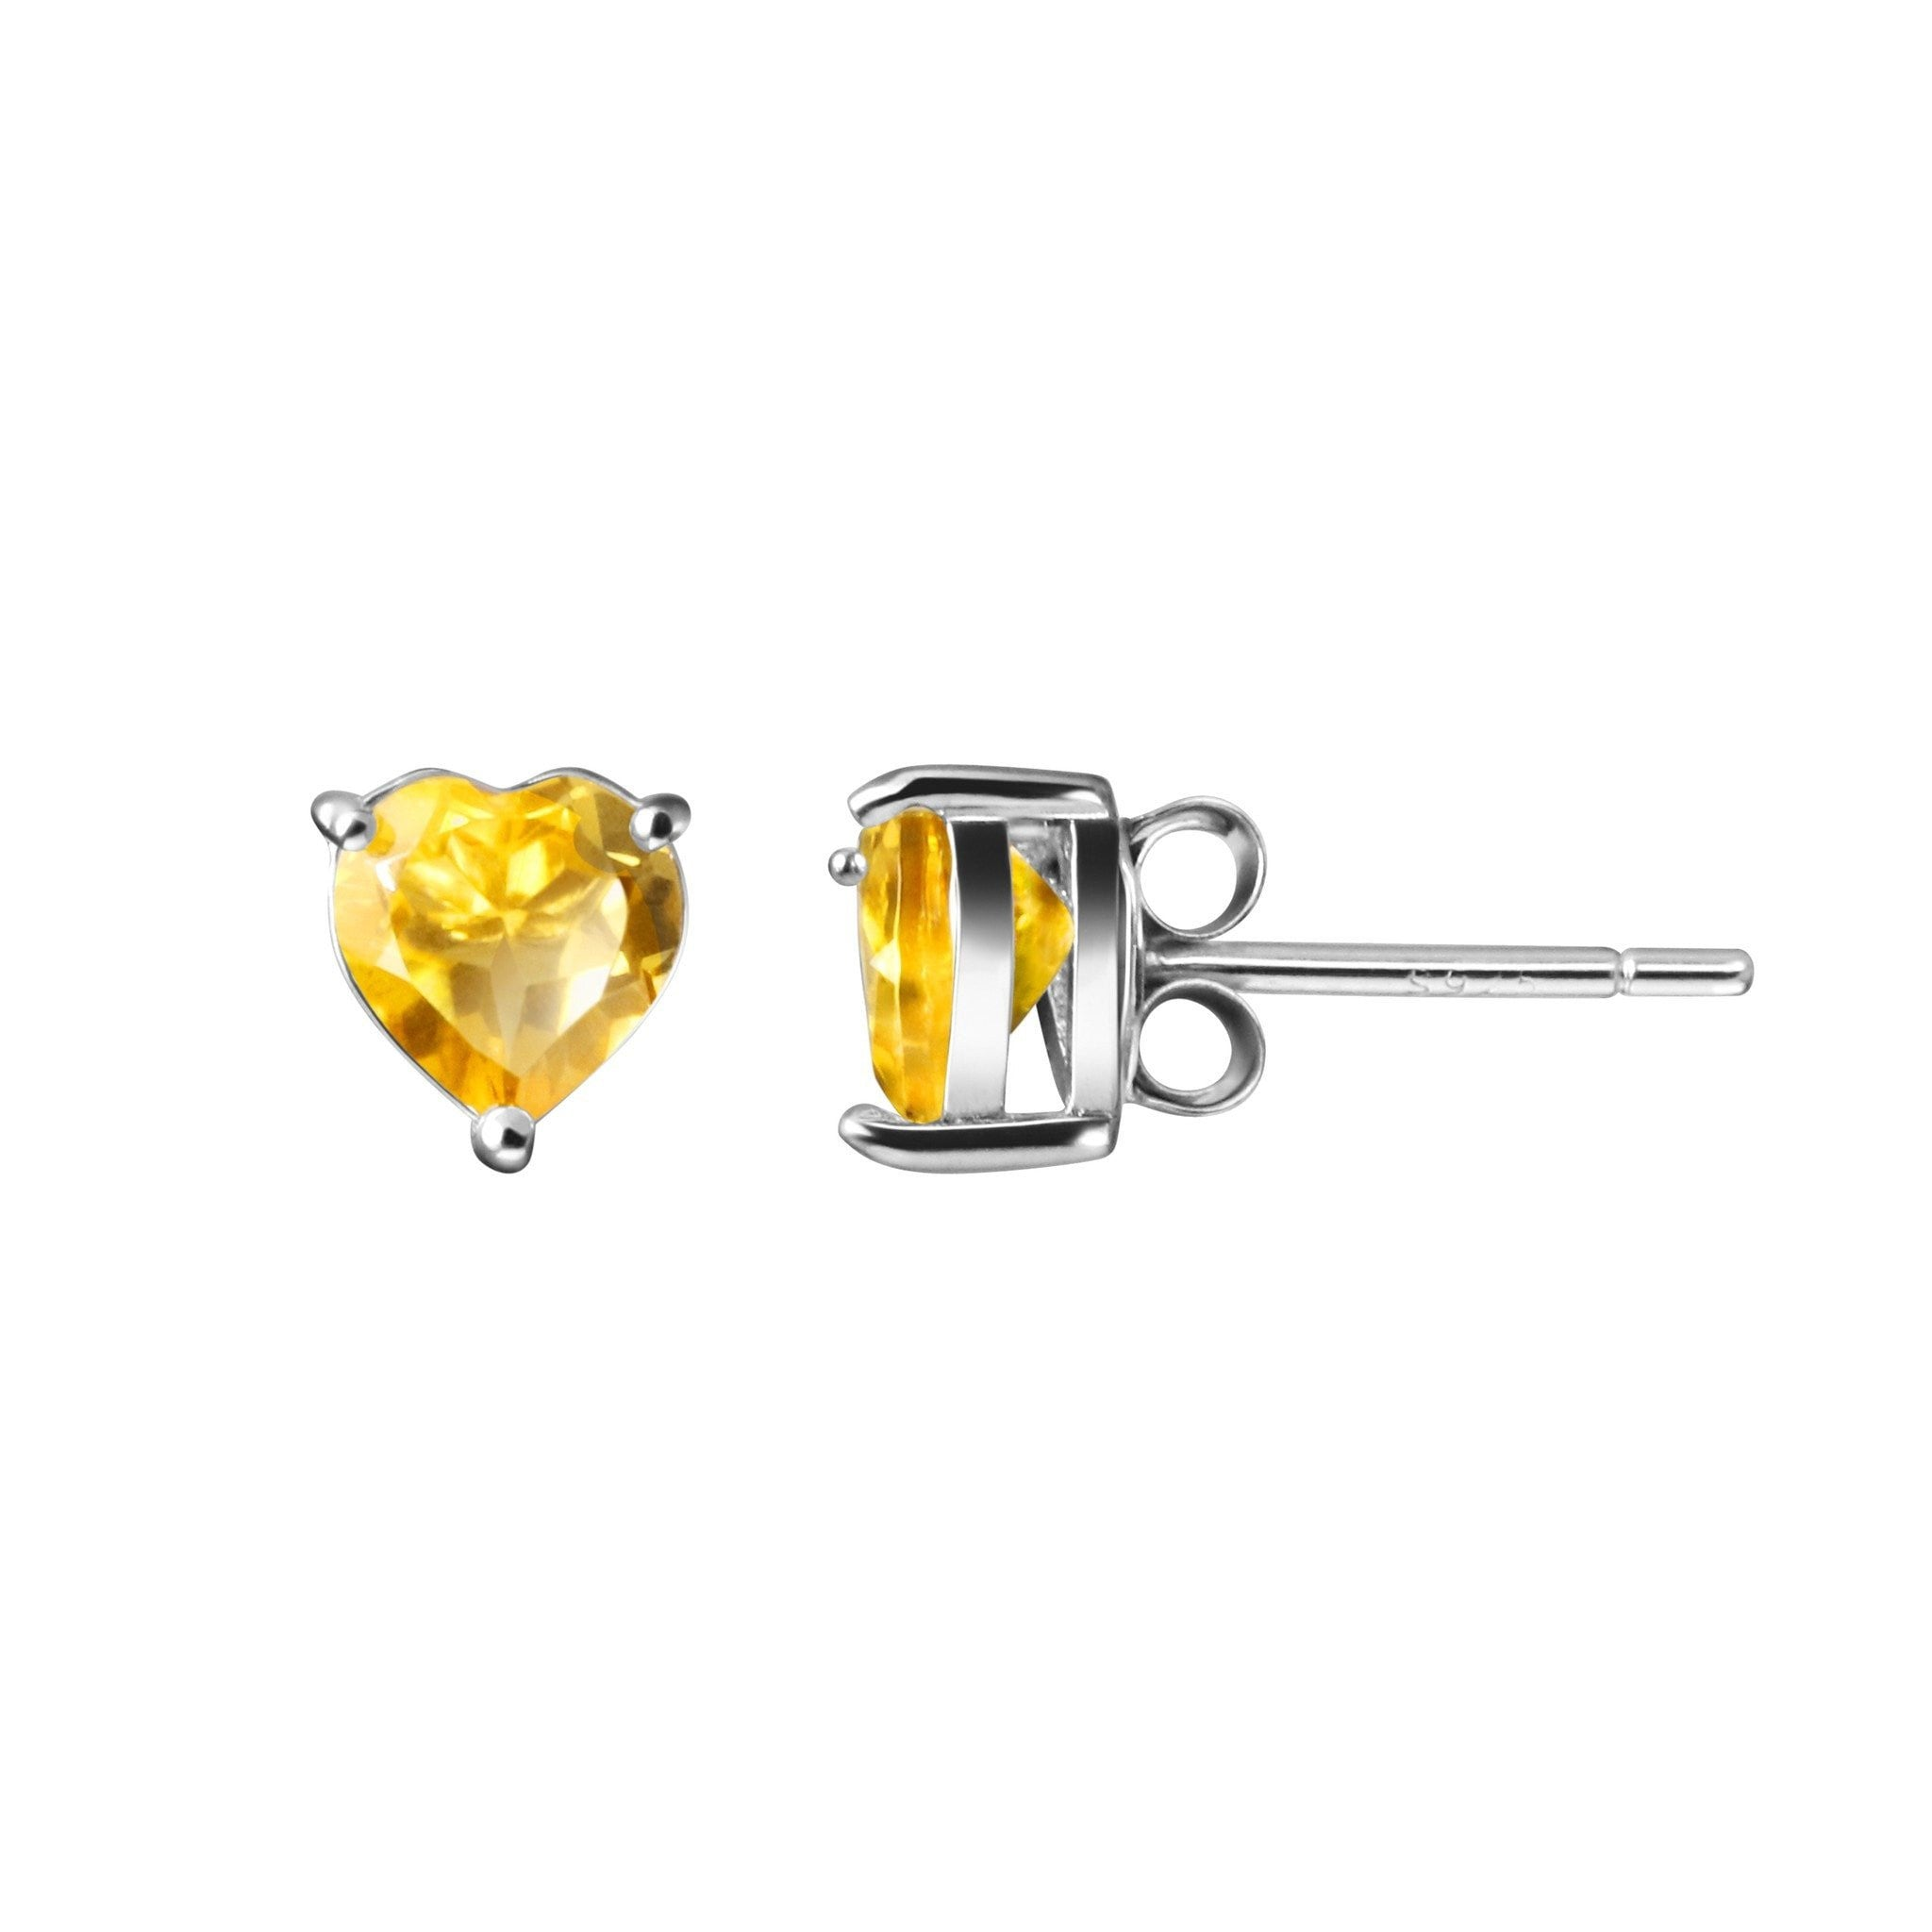 lrg silver birthstone november pandora citrine stud earrings p